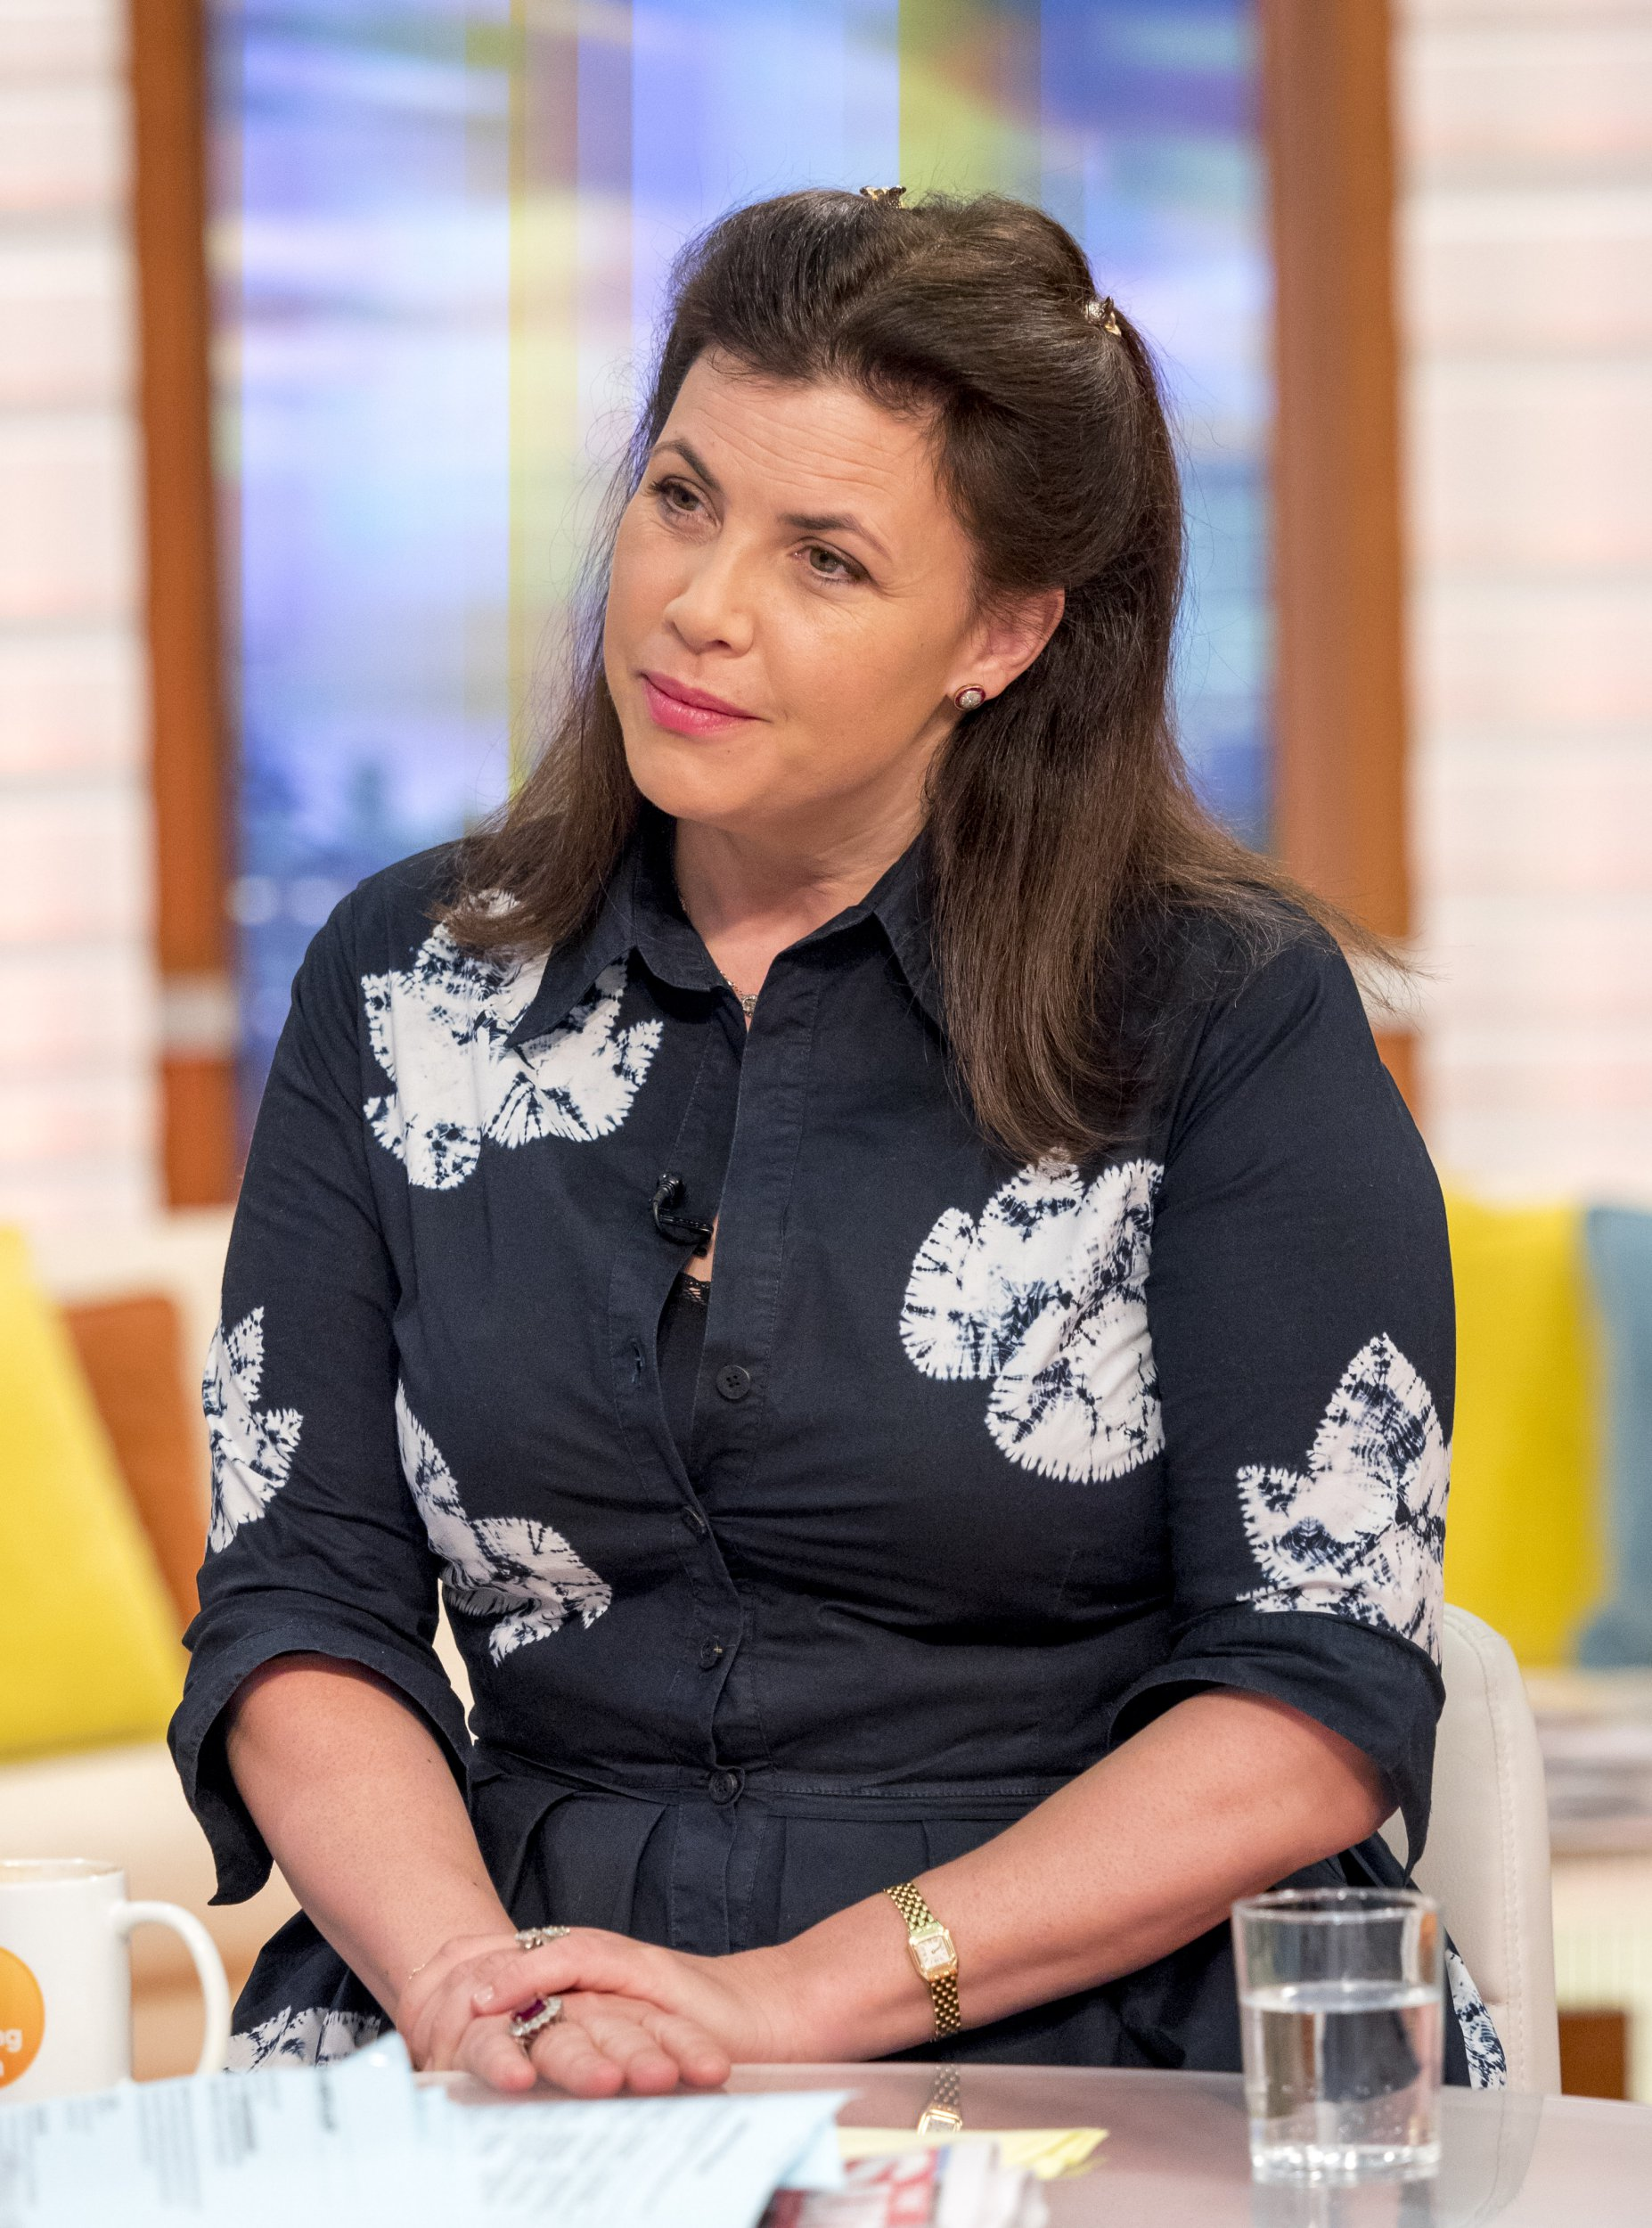 EDITORIAL USE ONLY. NO MERCHANDISING Mandatory Credit: Photo by Ken McKay/ITV/REX/Shutterstock (9331954c) Kirstie Allsopp 'Good Morning Britain' TV show, London, UK - 23 Jan 2018 After being told to tone down the 'darlings' by politically correct TV bosses, Kirstie Allsop is back on the box with Phil in a new series of Love It or List It.